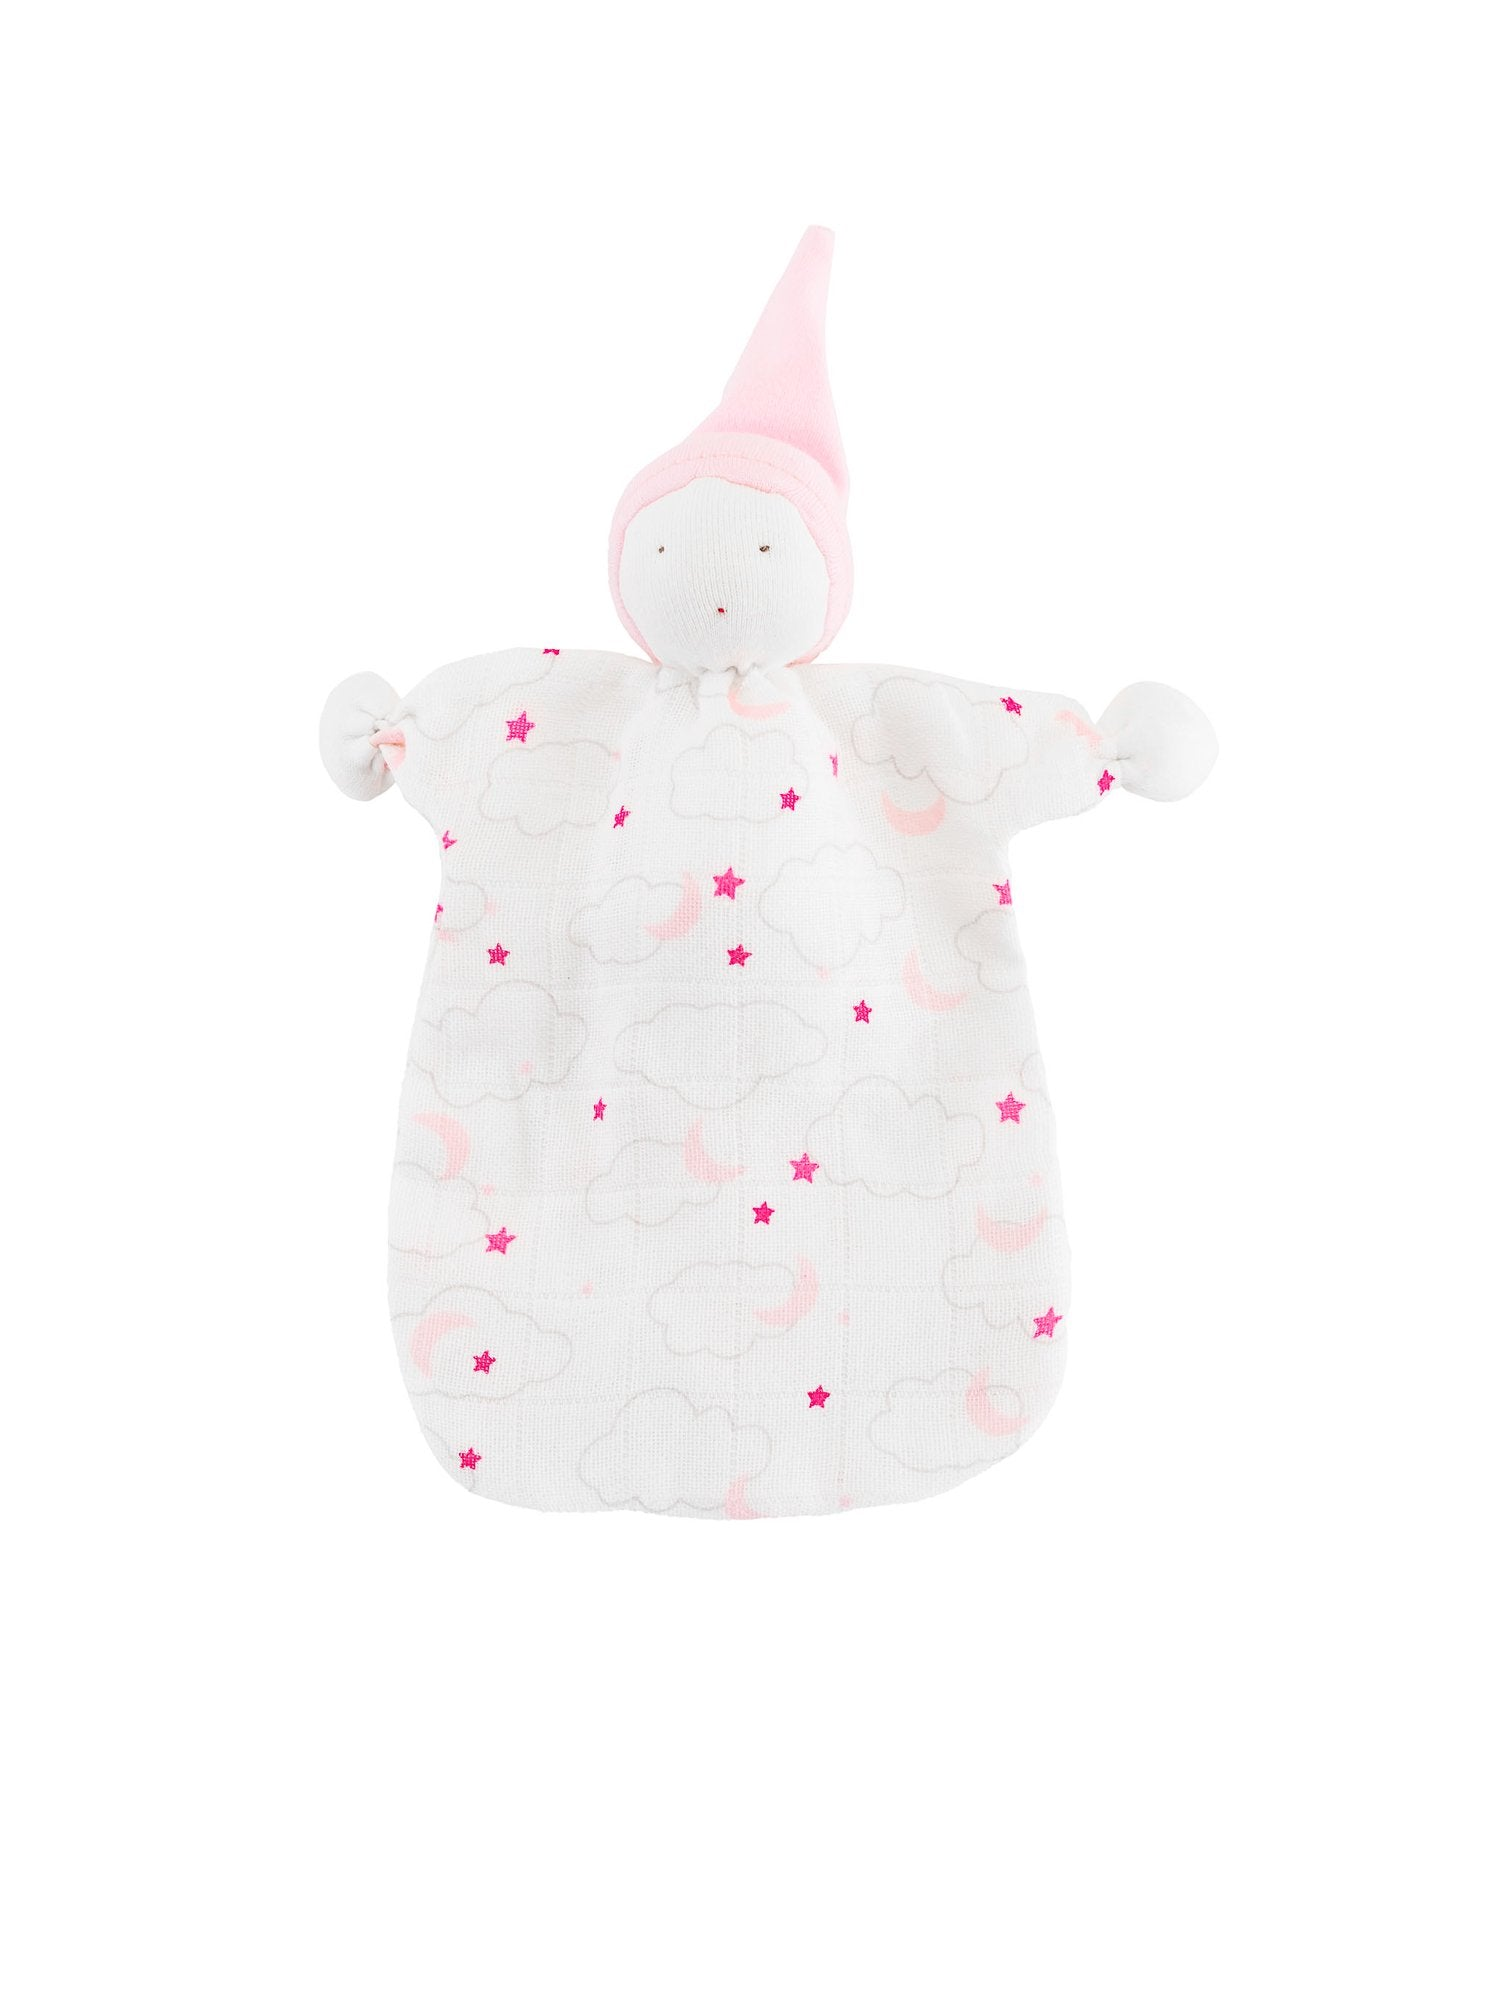 muslin-organic-cotton-baby-lovey-sleeping-doll-starry-print-pink